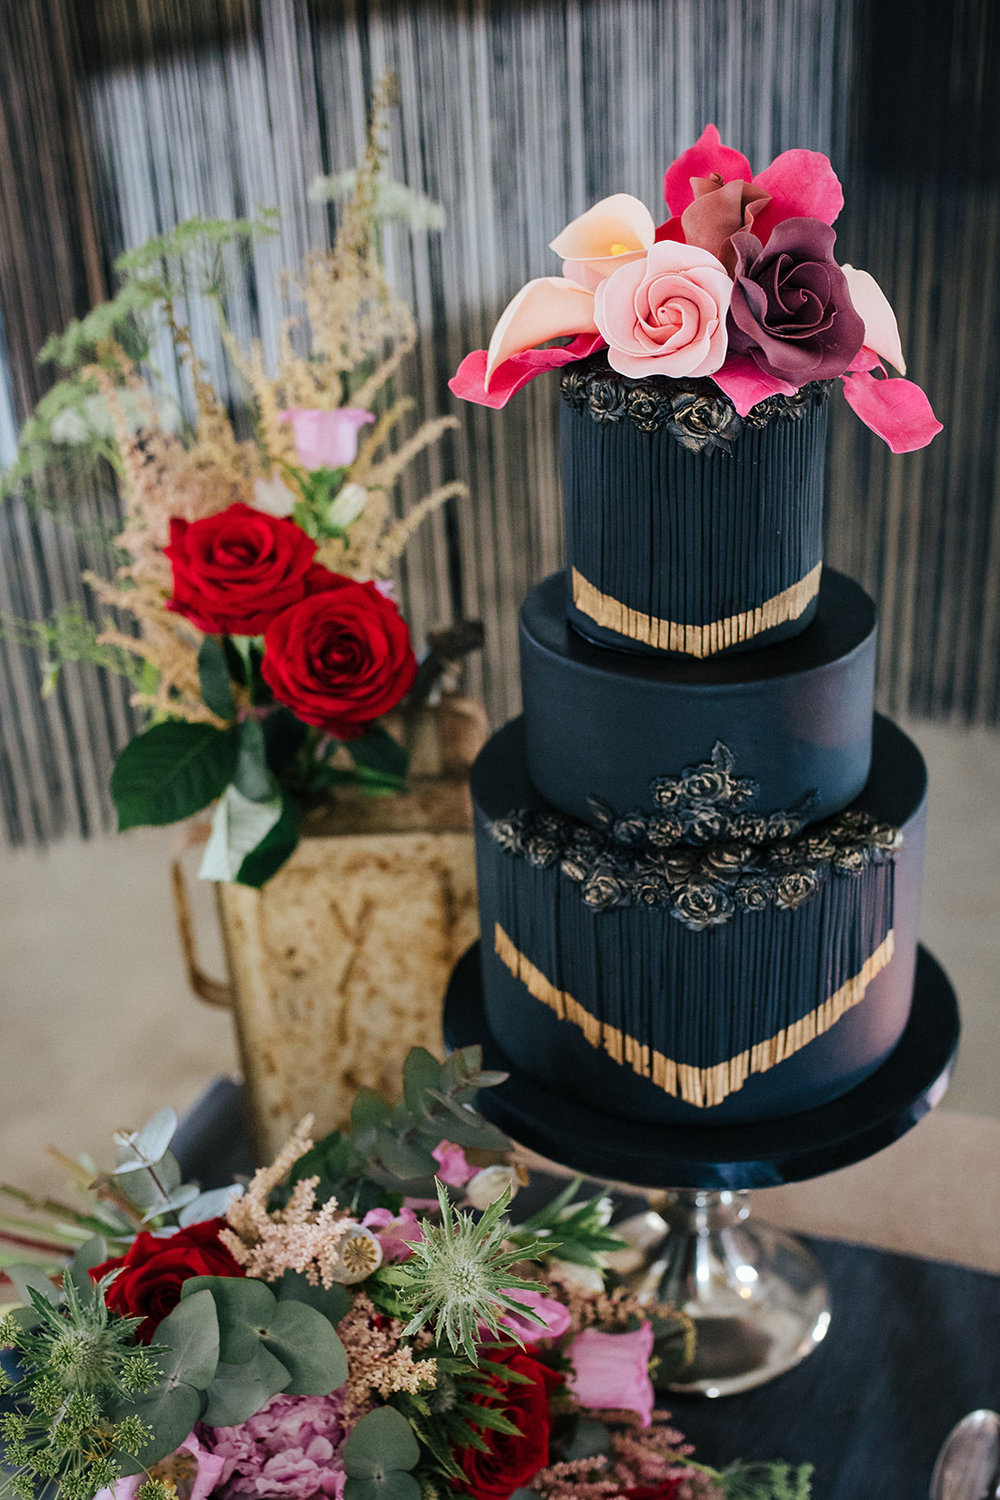 Black and gold tasselled wedding cake